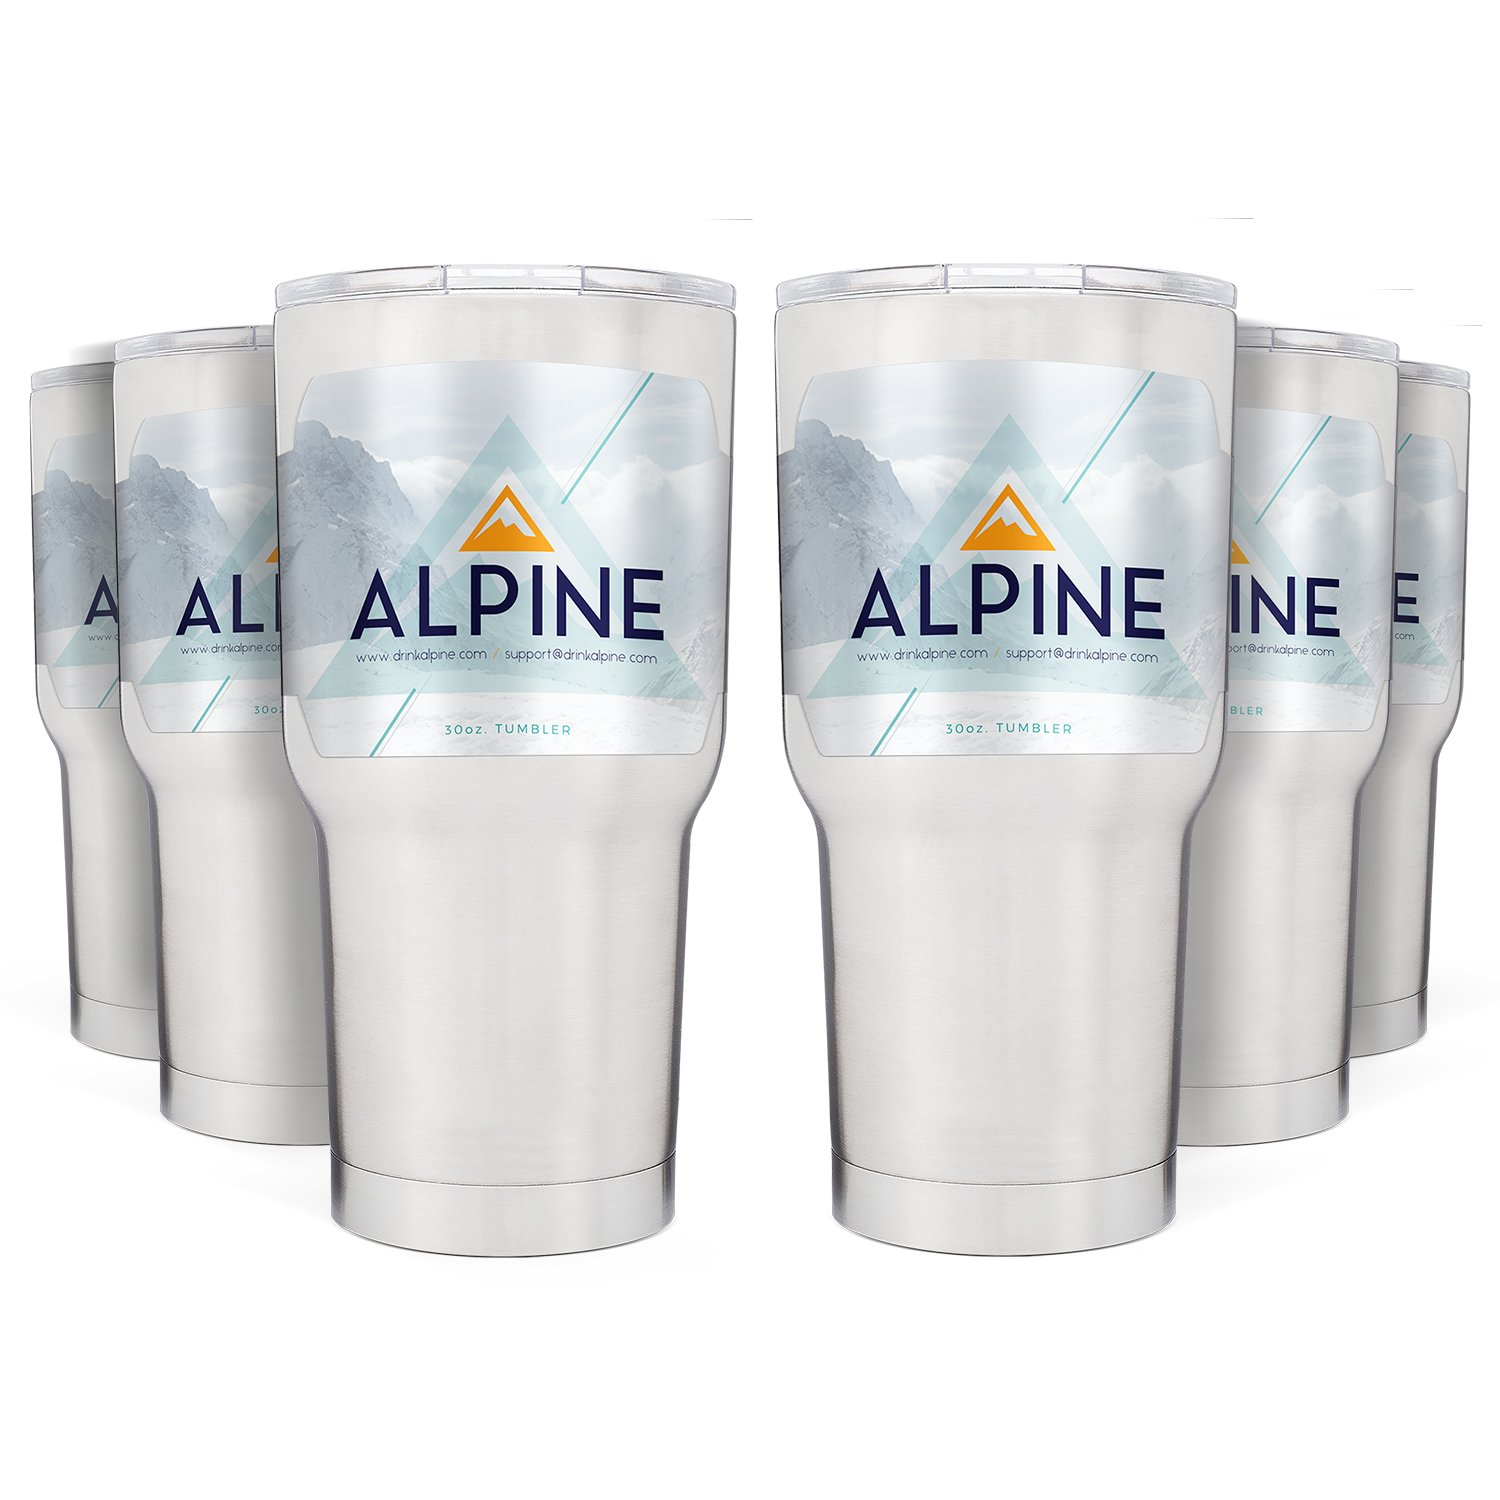 Alpine 30 oz. Tumbler Pack of 6 - Best Double Insulated Stainless Steel Tumbler Cup - Keeps Liquid Hot or Cold For Hours - Durable Sweat-Free Design With Tritan Lid by Alpine (Image #1)